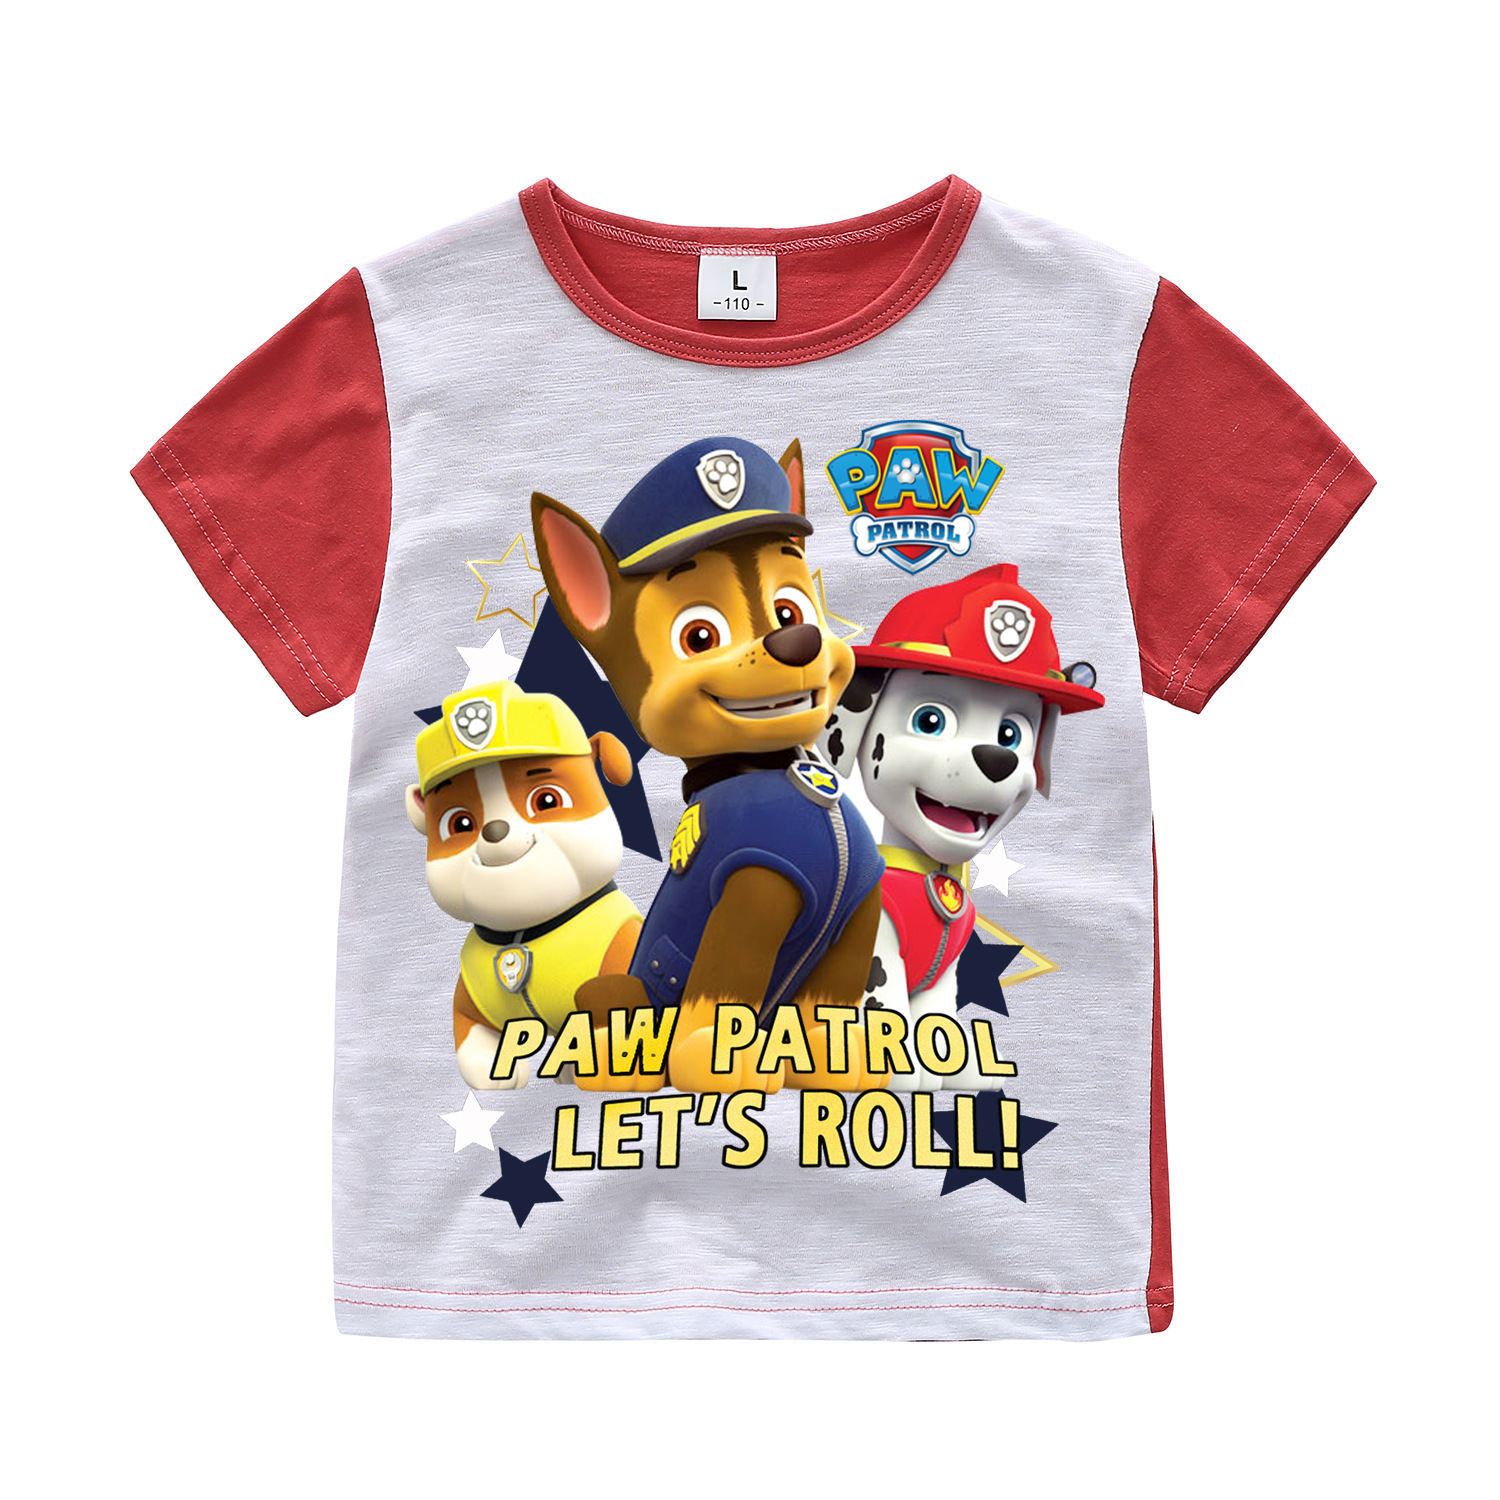 Kids T-shirts Children Short Sleeves Clothes Boy Girls Summer Cotton Dog Cartoon Printed Tee Tops Kids Game T Shirts Costume